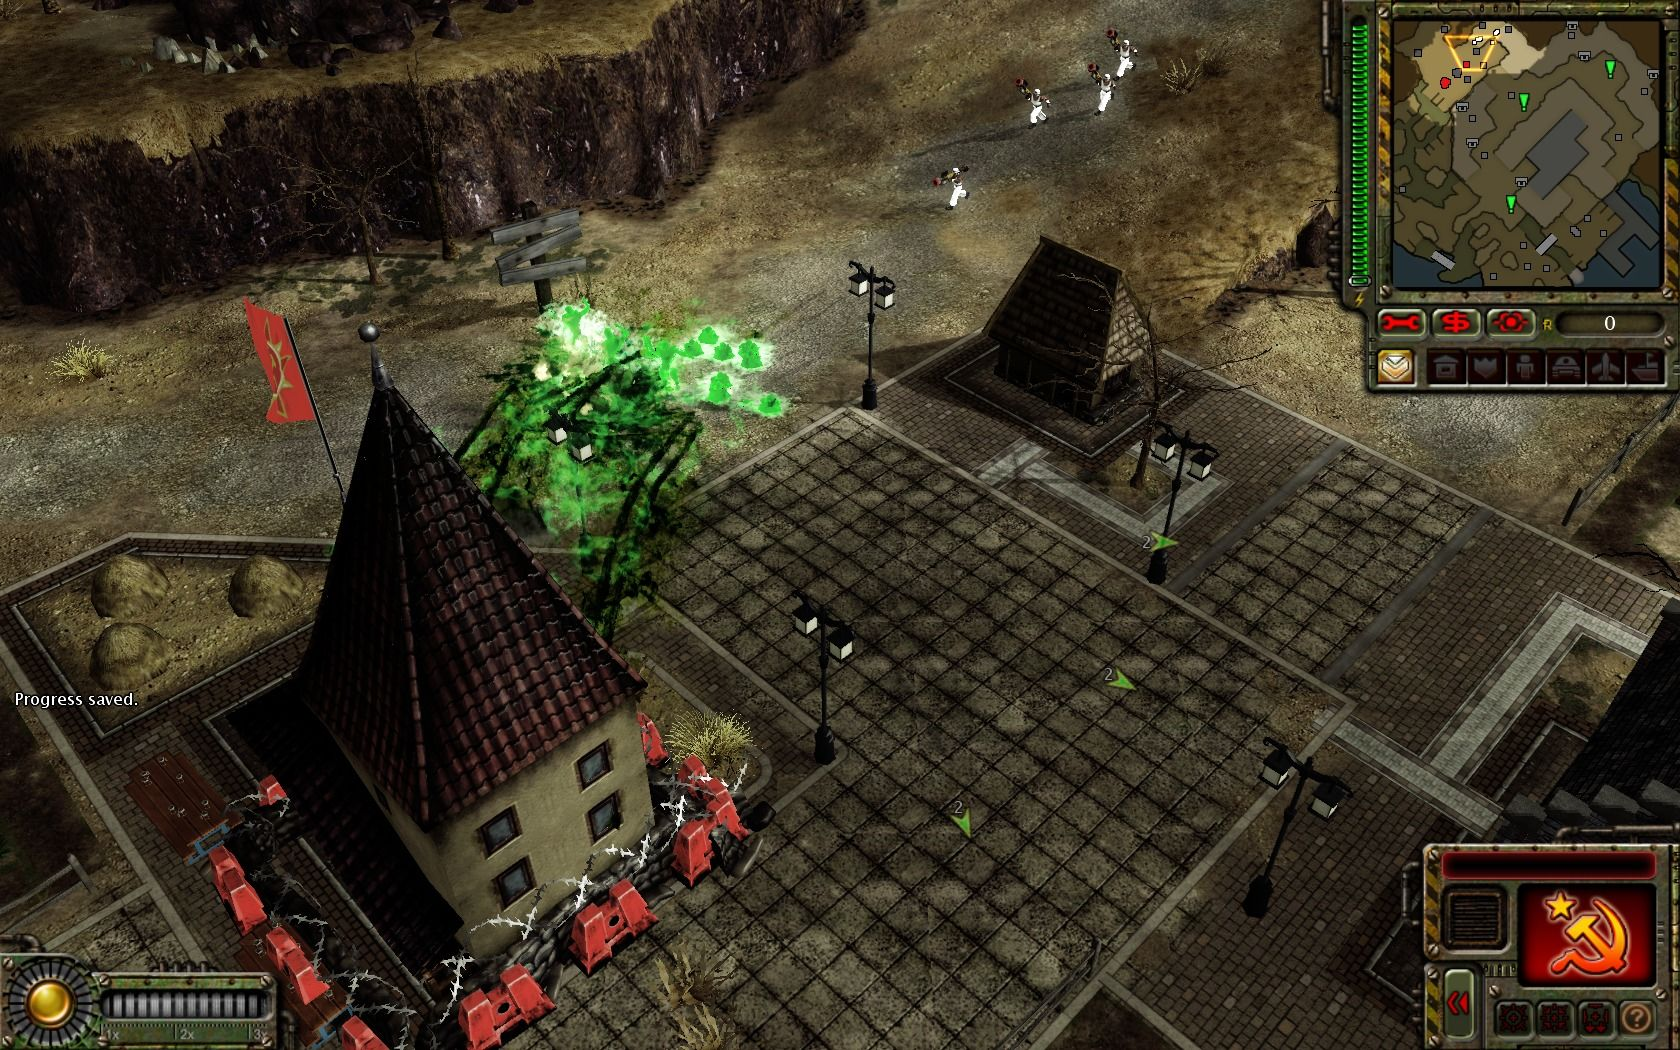 Command & Conquer: Red Alert 3 - Uprising Windows Soviet new desolator units are deadly for the infantry.